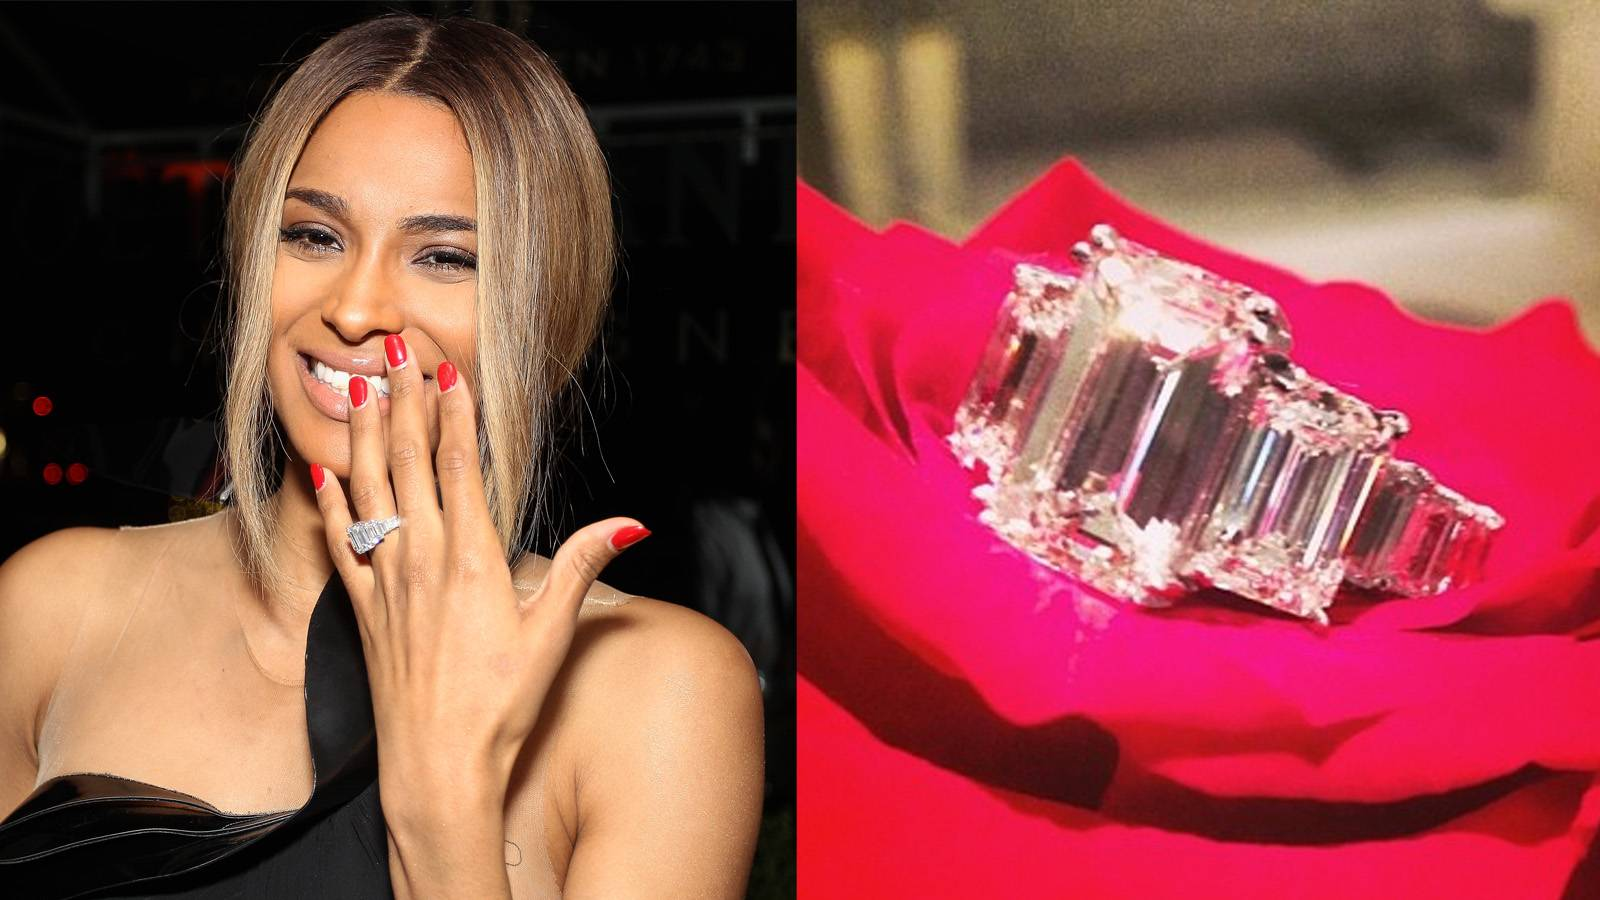 Ciara - Ciara and Future called off their engagement in August 2014, but we still can't help but fawn over her ring. The rapper-producer proposed in October 2013 with a spectacular 15-carat emerald-cut diamond engagement ring. They have a son together. (Photo: Bob Levey/Getty Images for Moet & Chandon, Photo via Instagram Ciara)